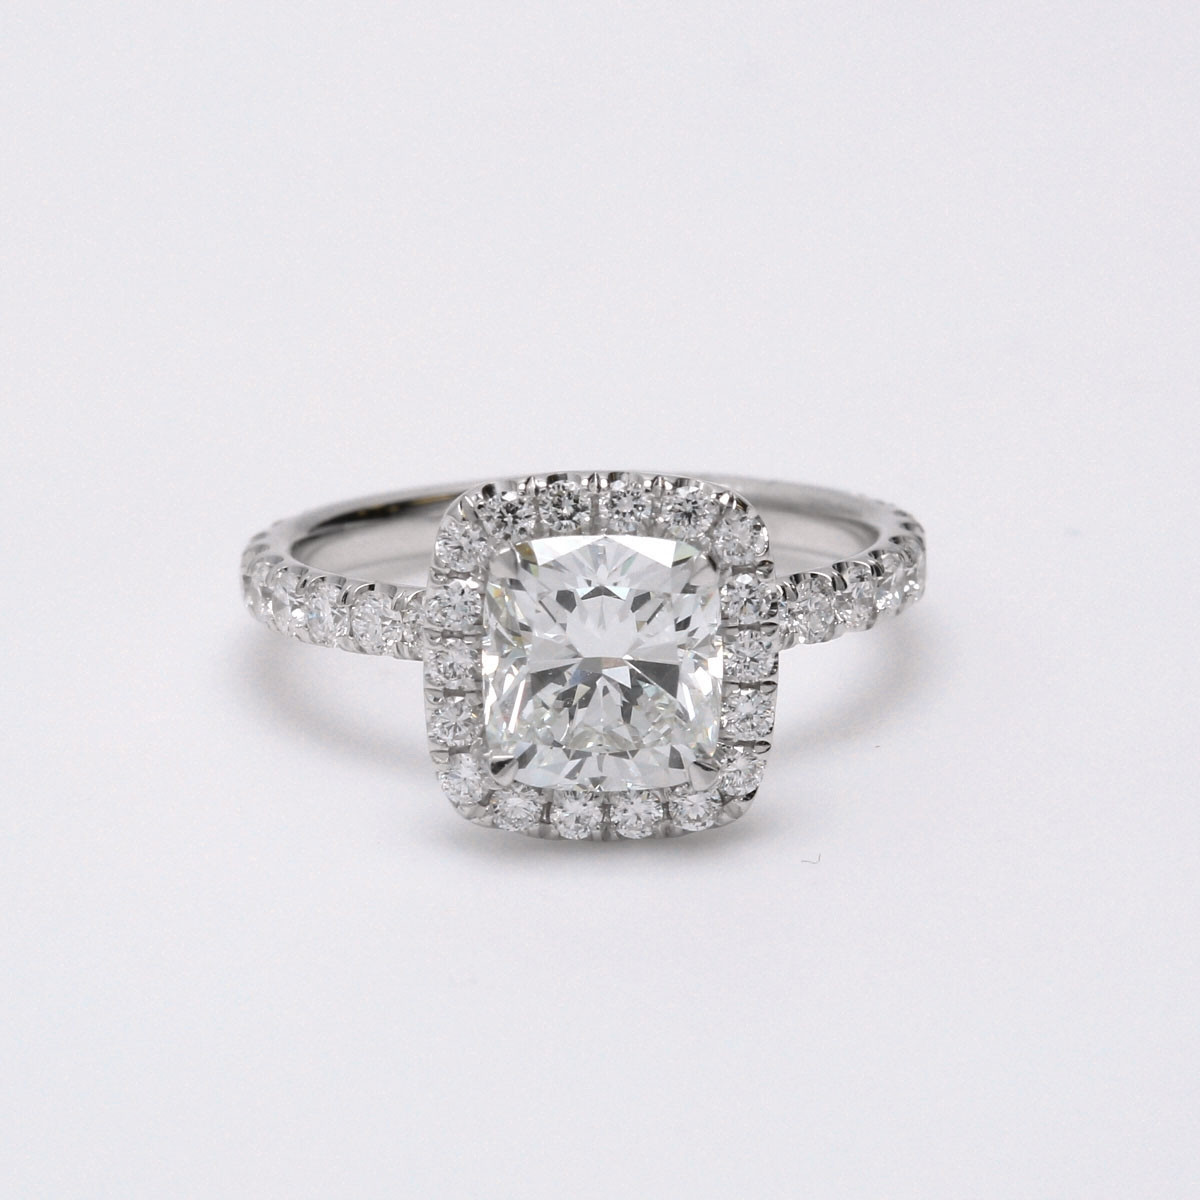 Diamond Halo Semi Mount Engagement Ring in White Gold